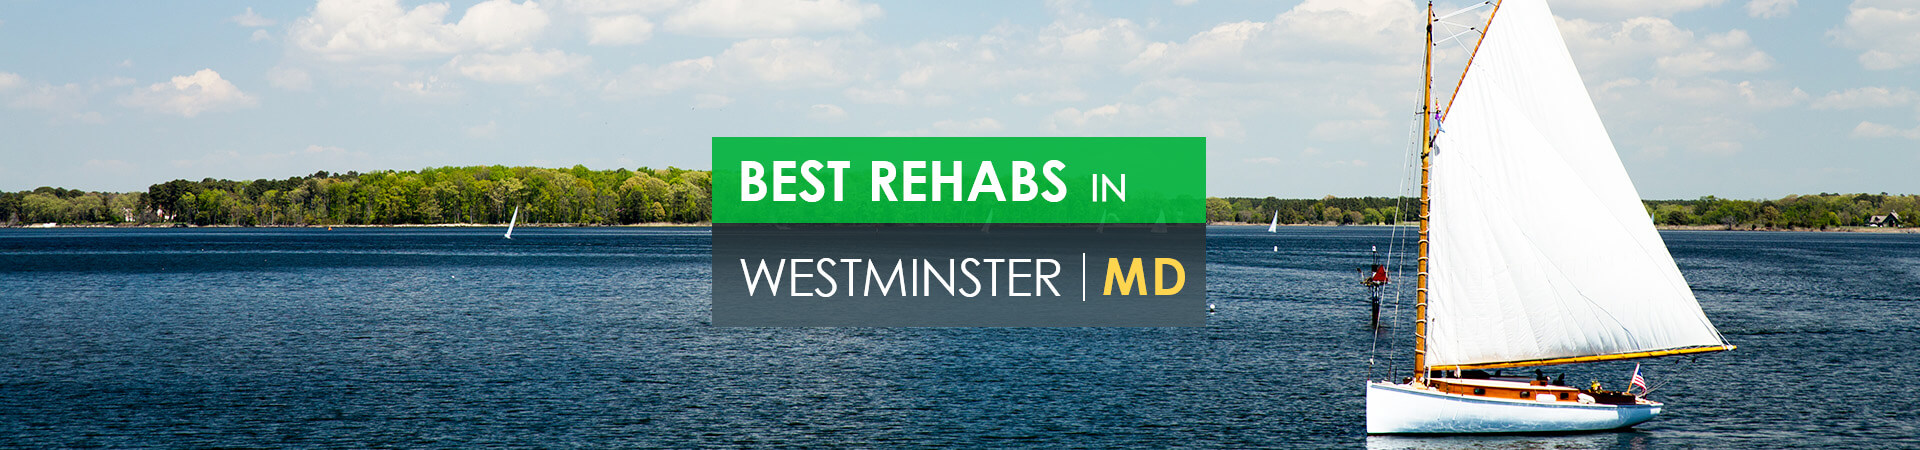 Best rehabs in Westminster, MD